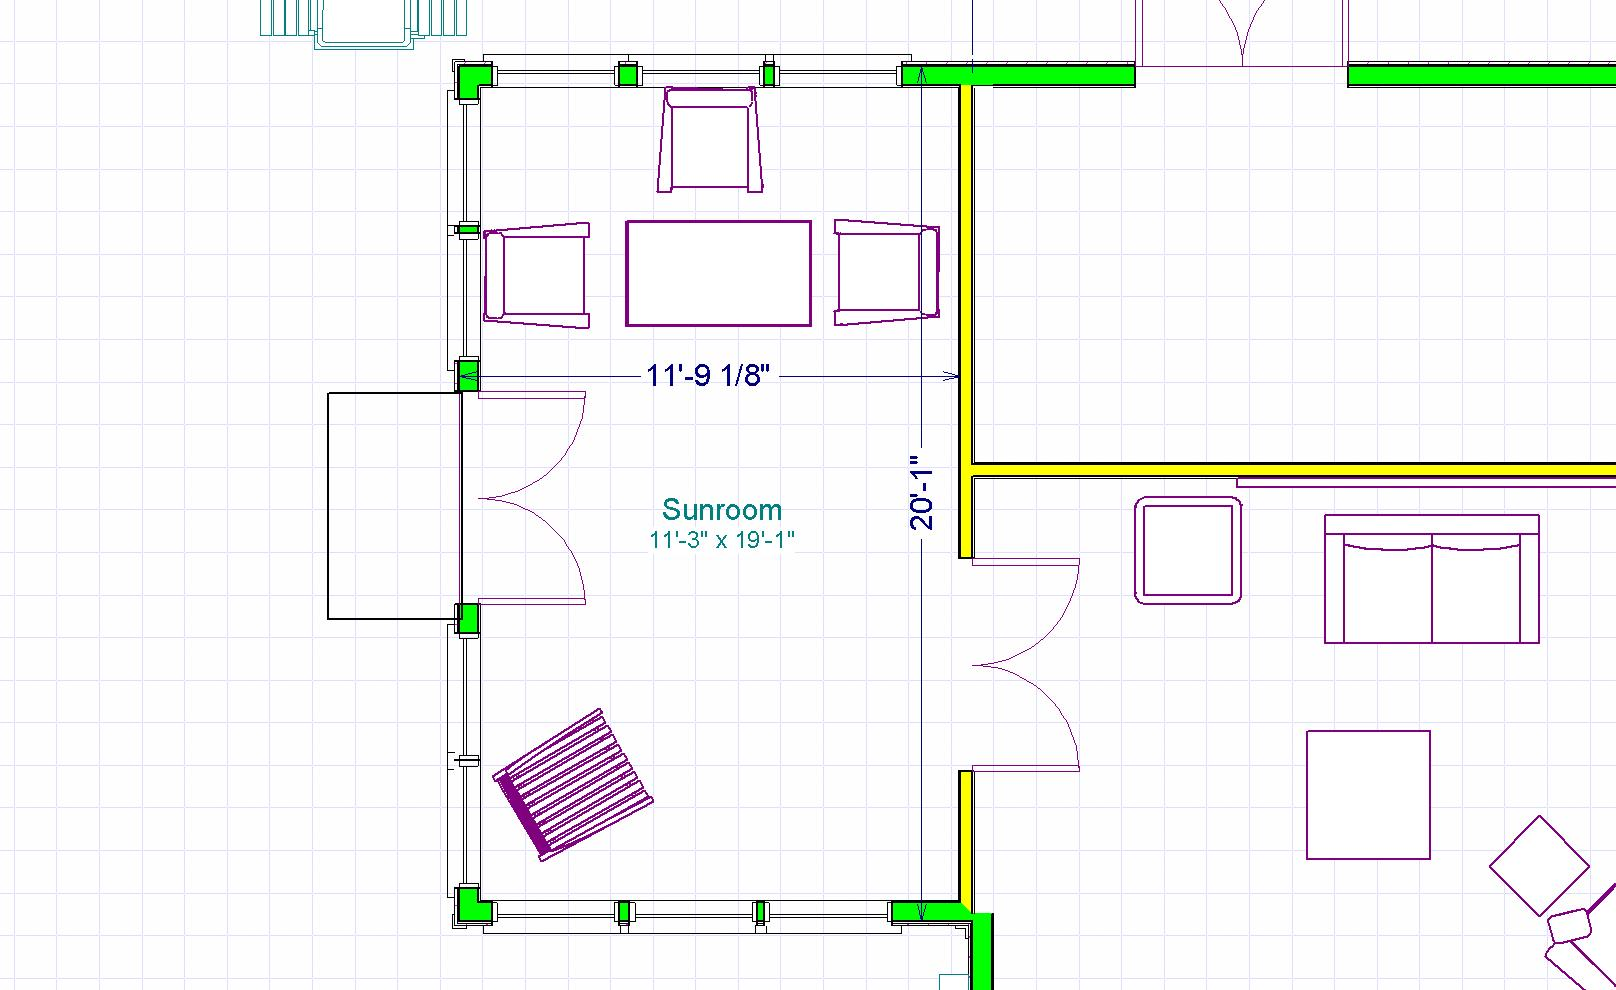 dream sunroom plans free 15 photo building plans online On sunroom blueprints free